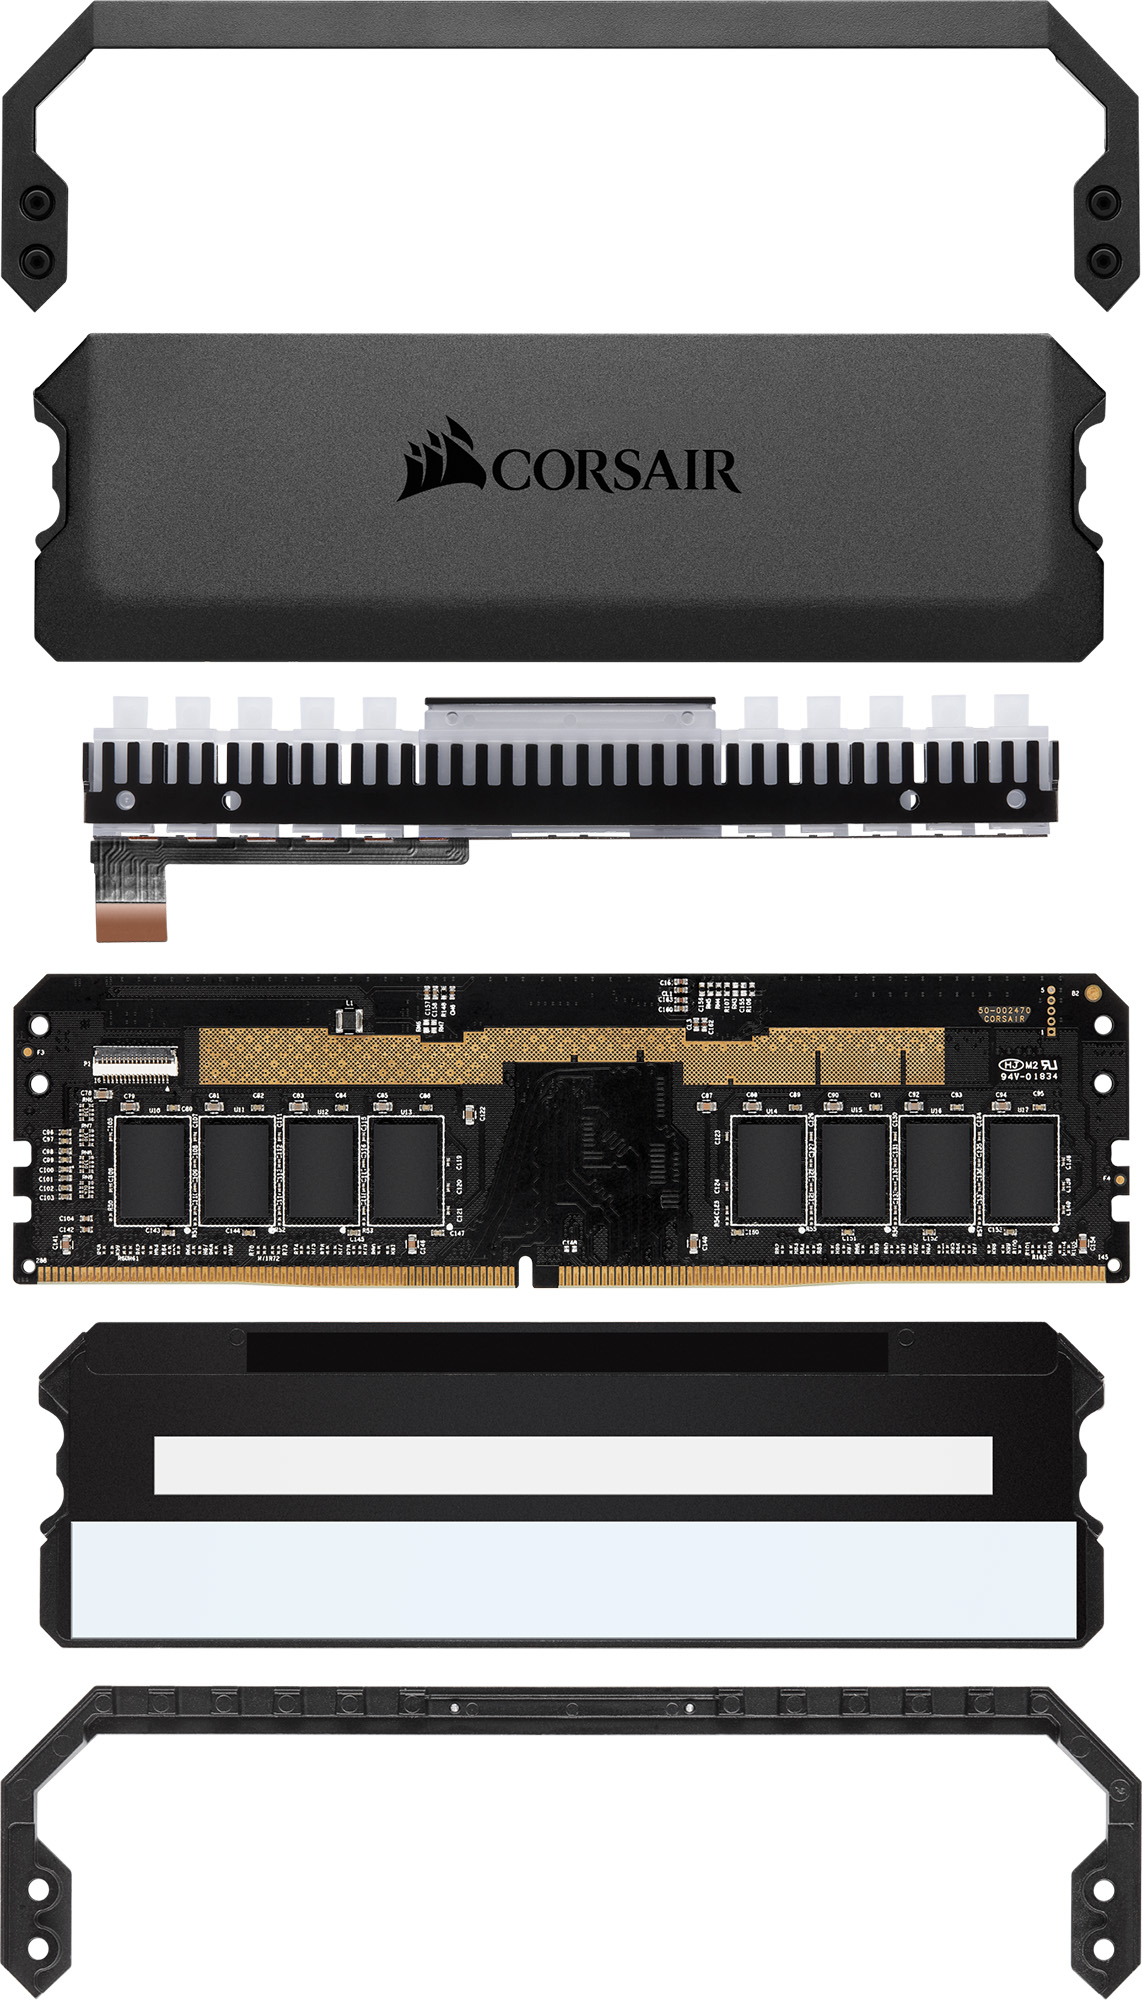 Corsair Releases First CAPELLIX LED Memory Kit: DOMINATOR Platinum